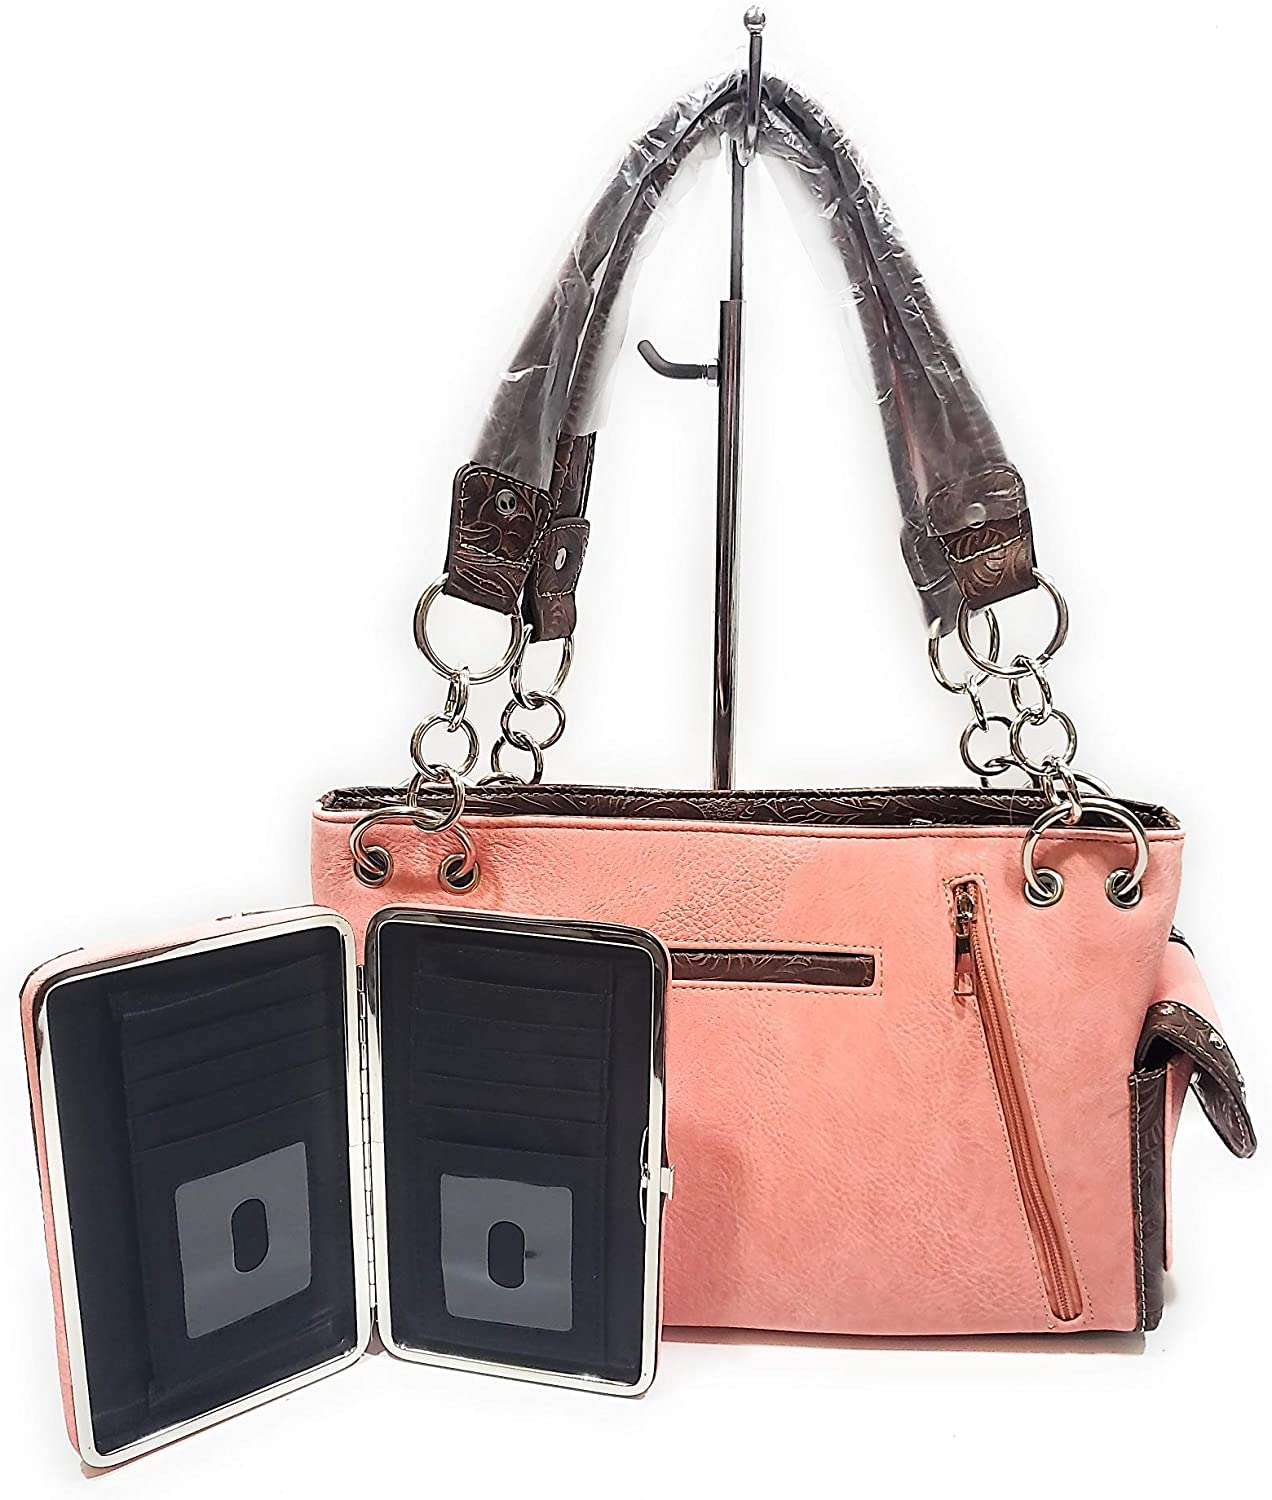 Coral orange peach BHW Rhinestone Turquoise Cross Wings Concealed Carry CCW Purse Wallet Jp